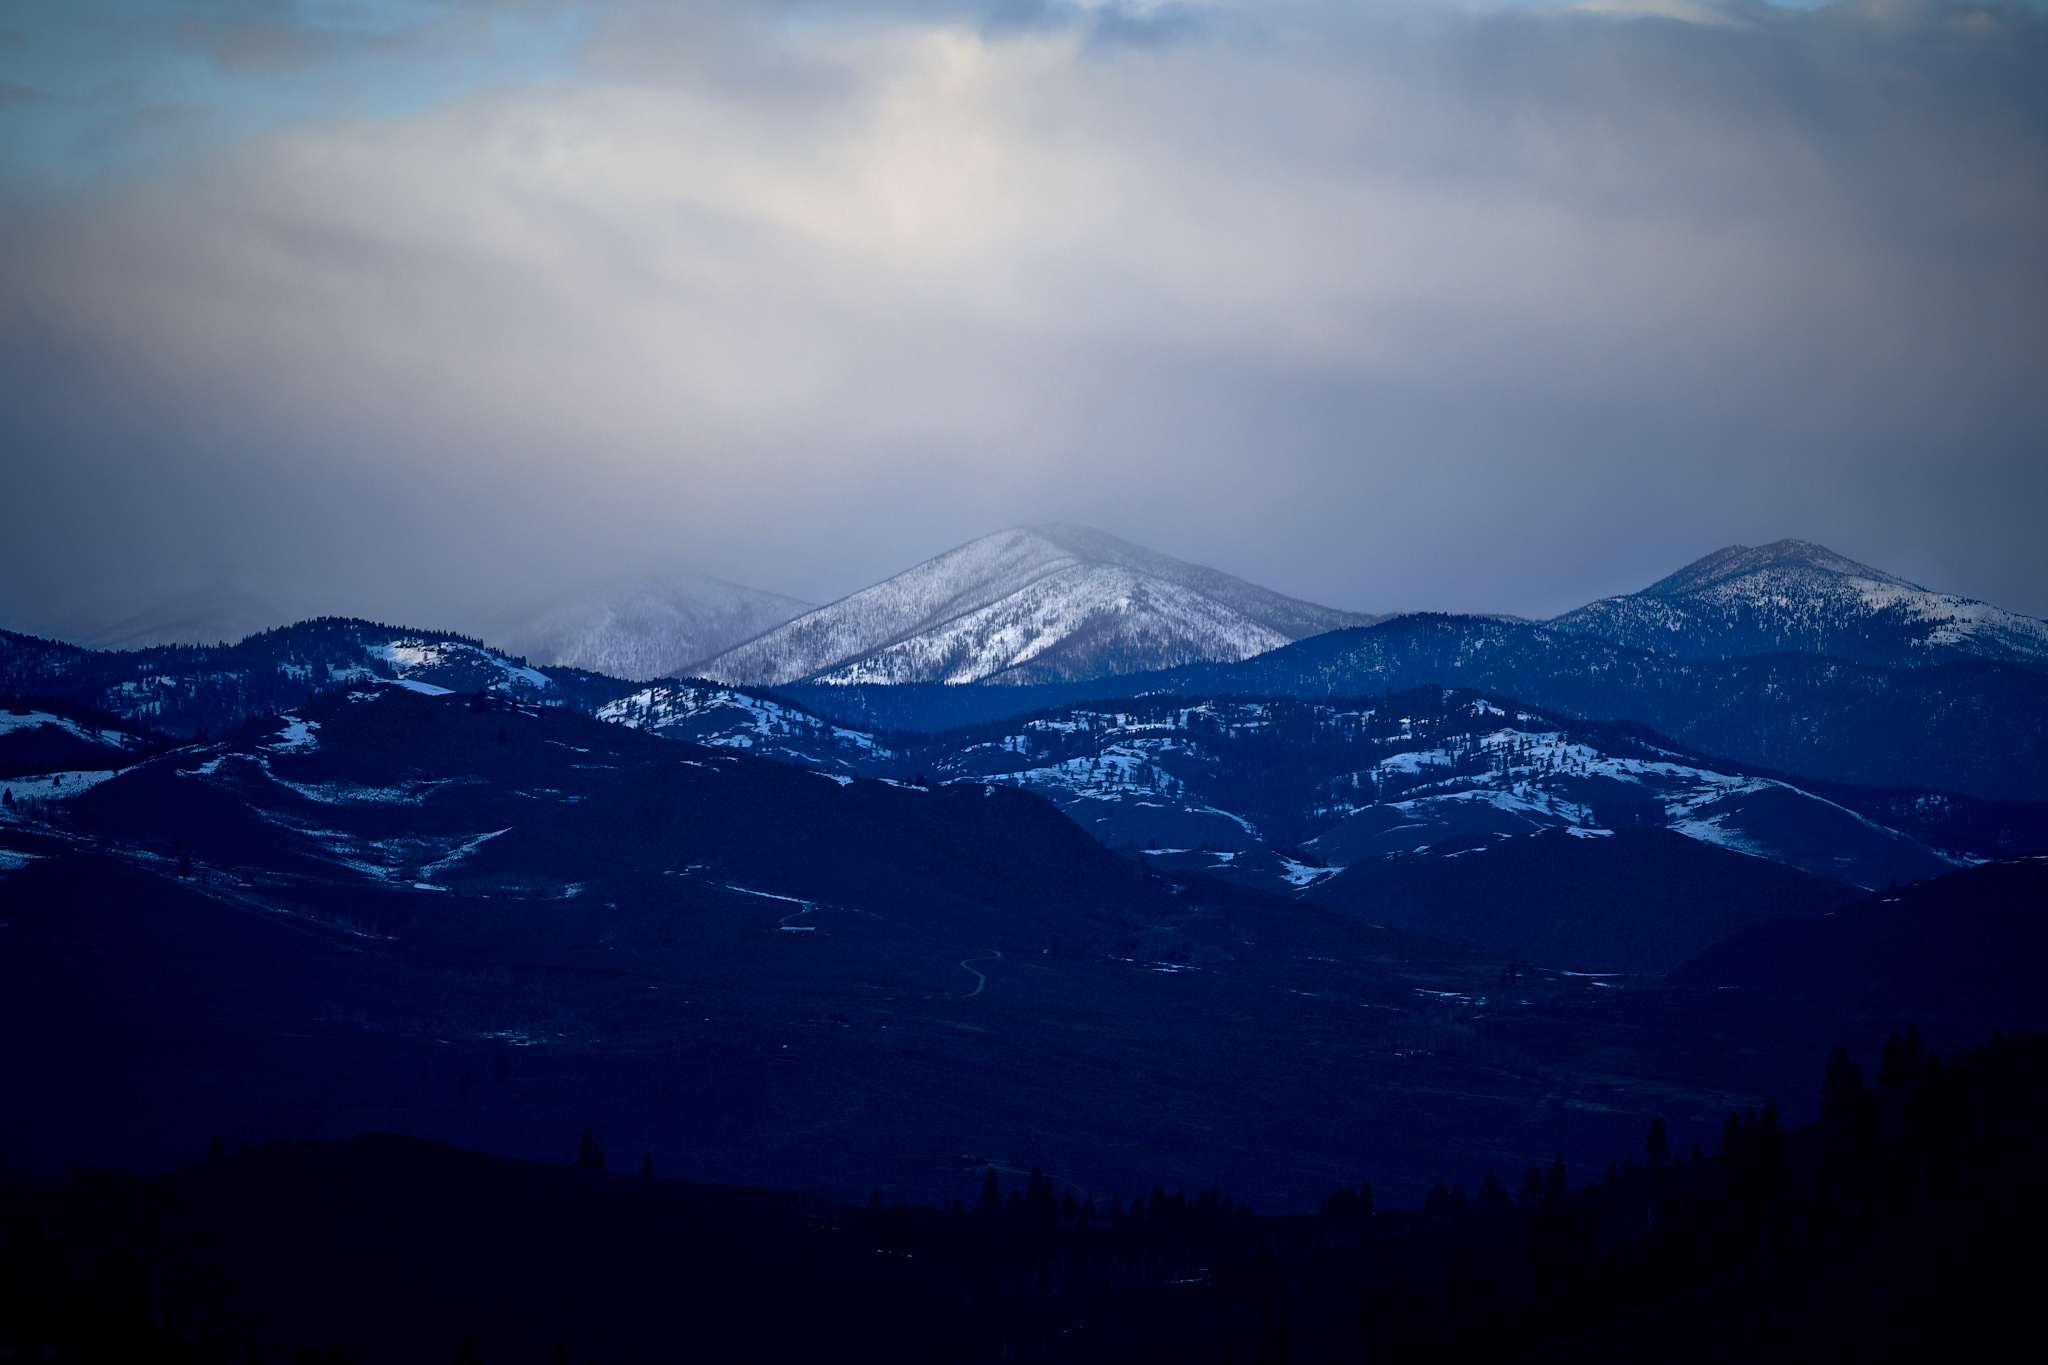 Methow Landscape at Dusk